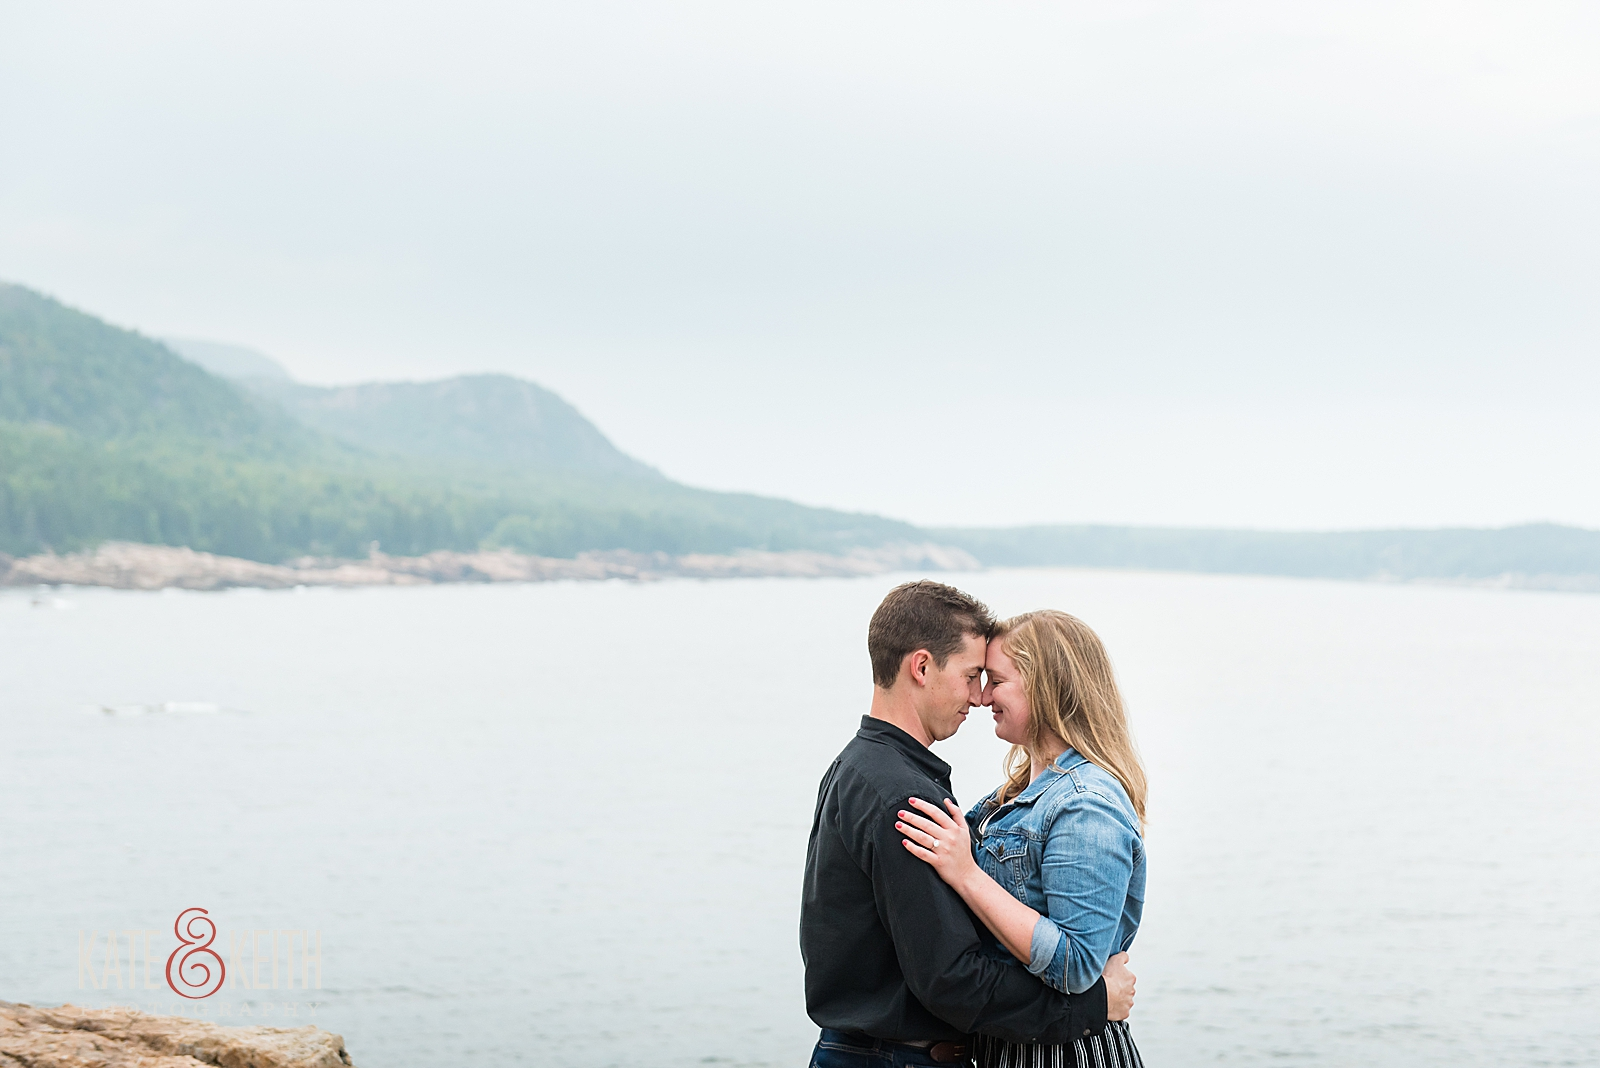 Acadia National Park,Acadia proposal location,Acadia proposal photographer,Acadia wedding photographer,Maine wedding photographer,adventure couple,adventure photographers,destination photographers,national park wedding photographer,vegan photographers,vegan wedding photographer,